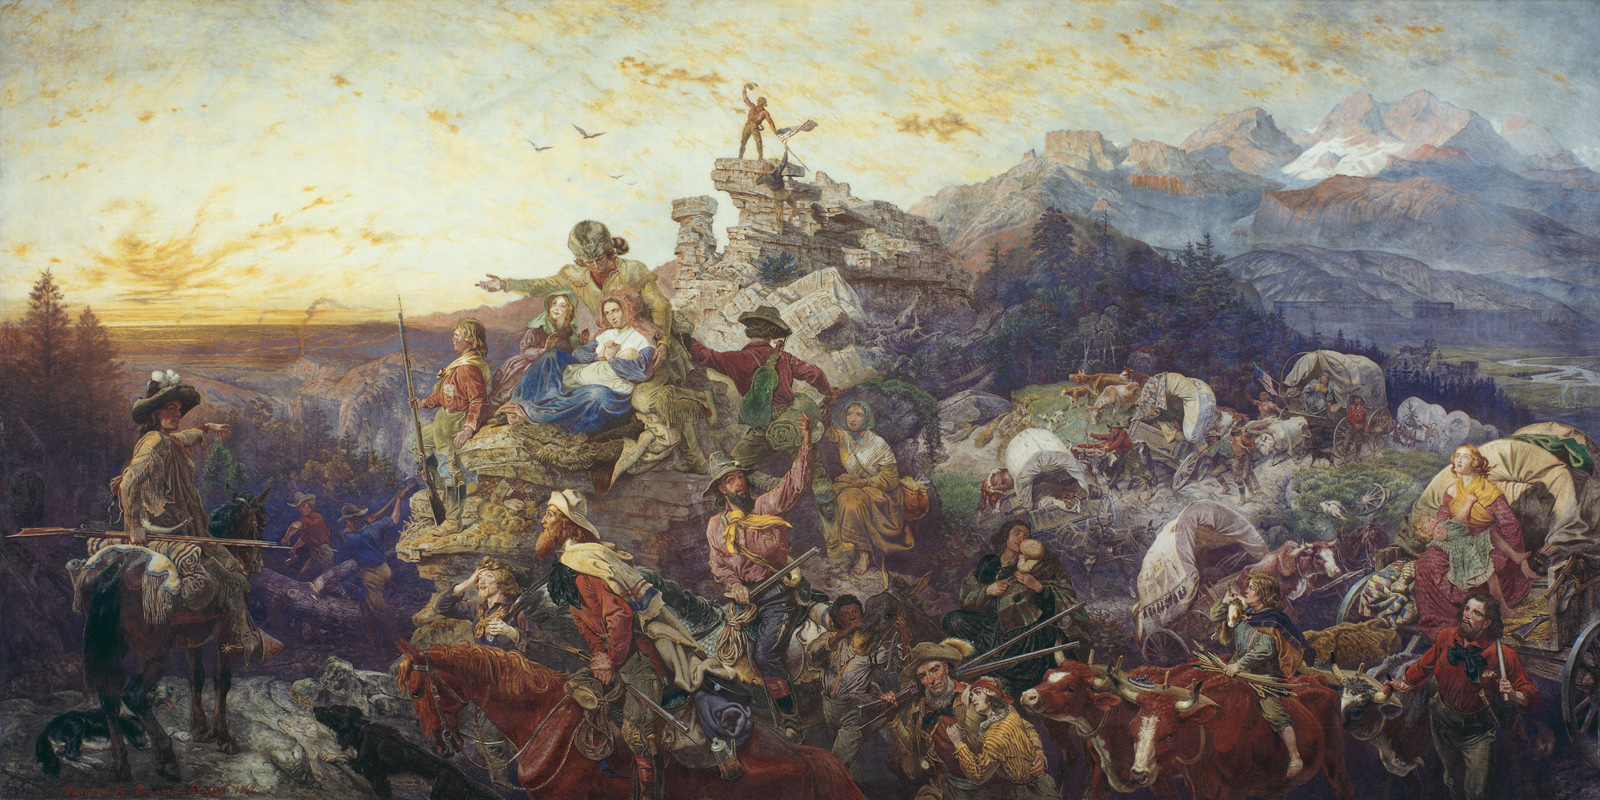 Emanuel Gottlieb Leutze, Westward the Course of Empire Takes Its Way, 1862. Mural, United States Capitol